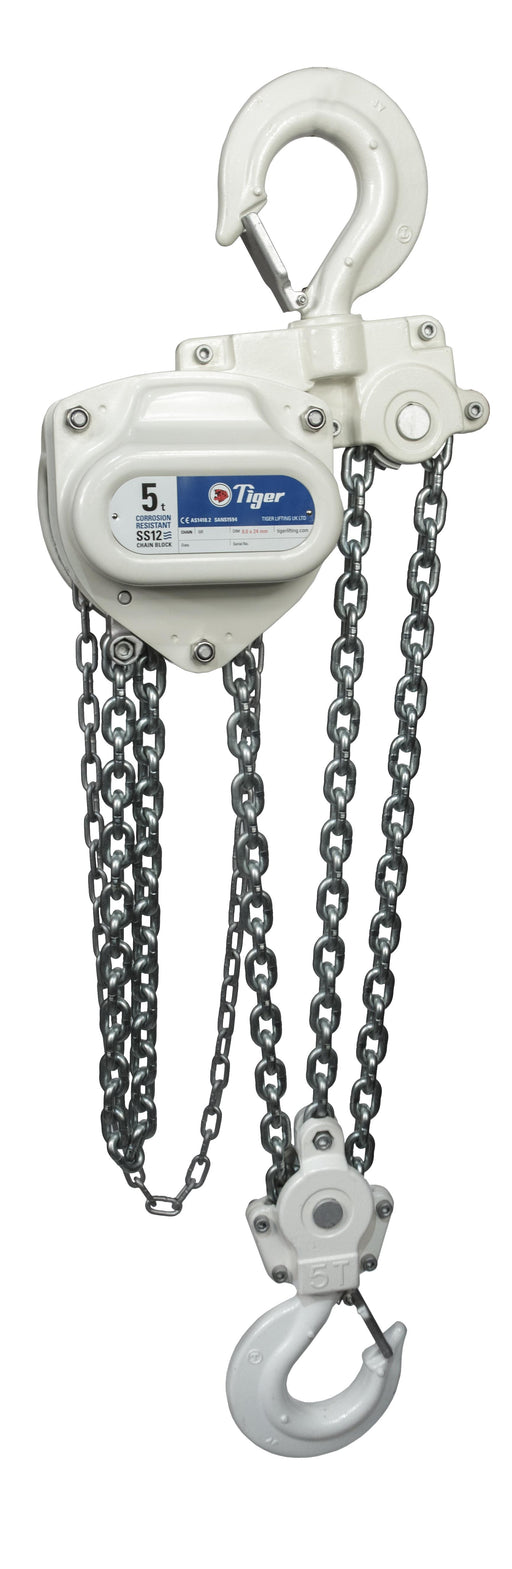 TIGER CORROSION RESISTANT CHAIN BLOCK SS12, 2.0t CAPACITY Ref: 211-54 - Hoistshop